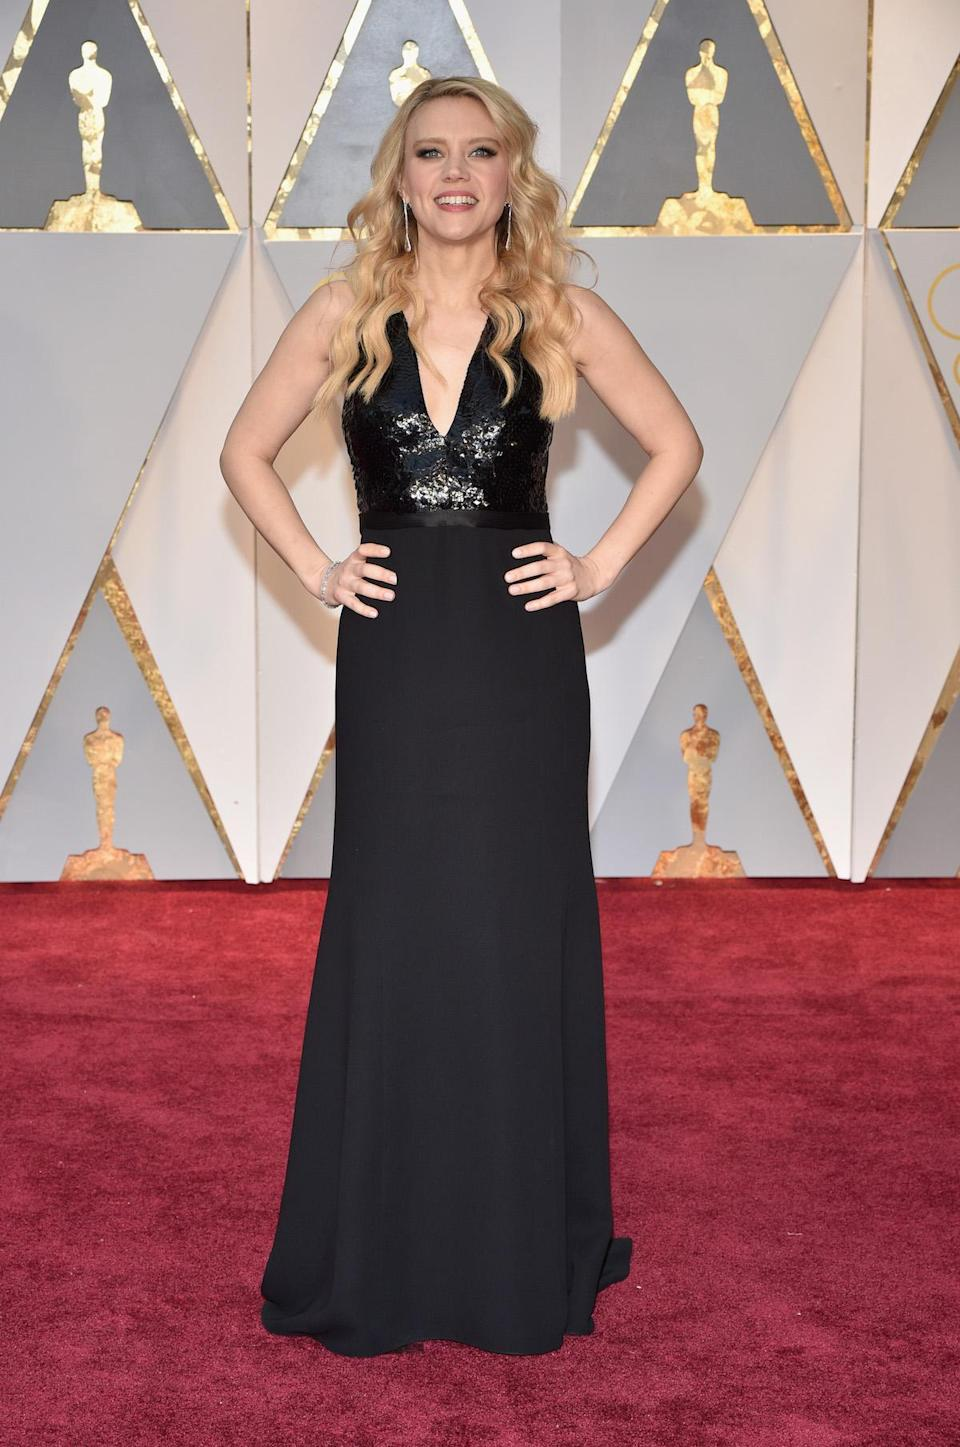 <p>Kate McKinnon ditched the <em>Saturday Night Live </em>costumes over the weekend for a more glamorous look. At the Oscars, where the comedienne was presenting an award, she stood out in a black halter gown from Narciso Rodriguez. <em>(Photo: Getty Images)</em> </p>